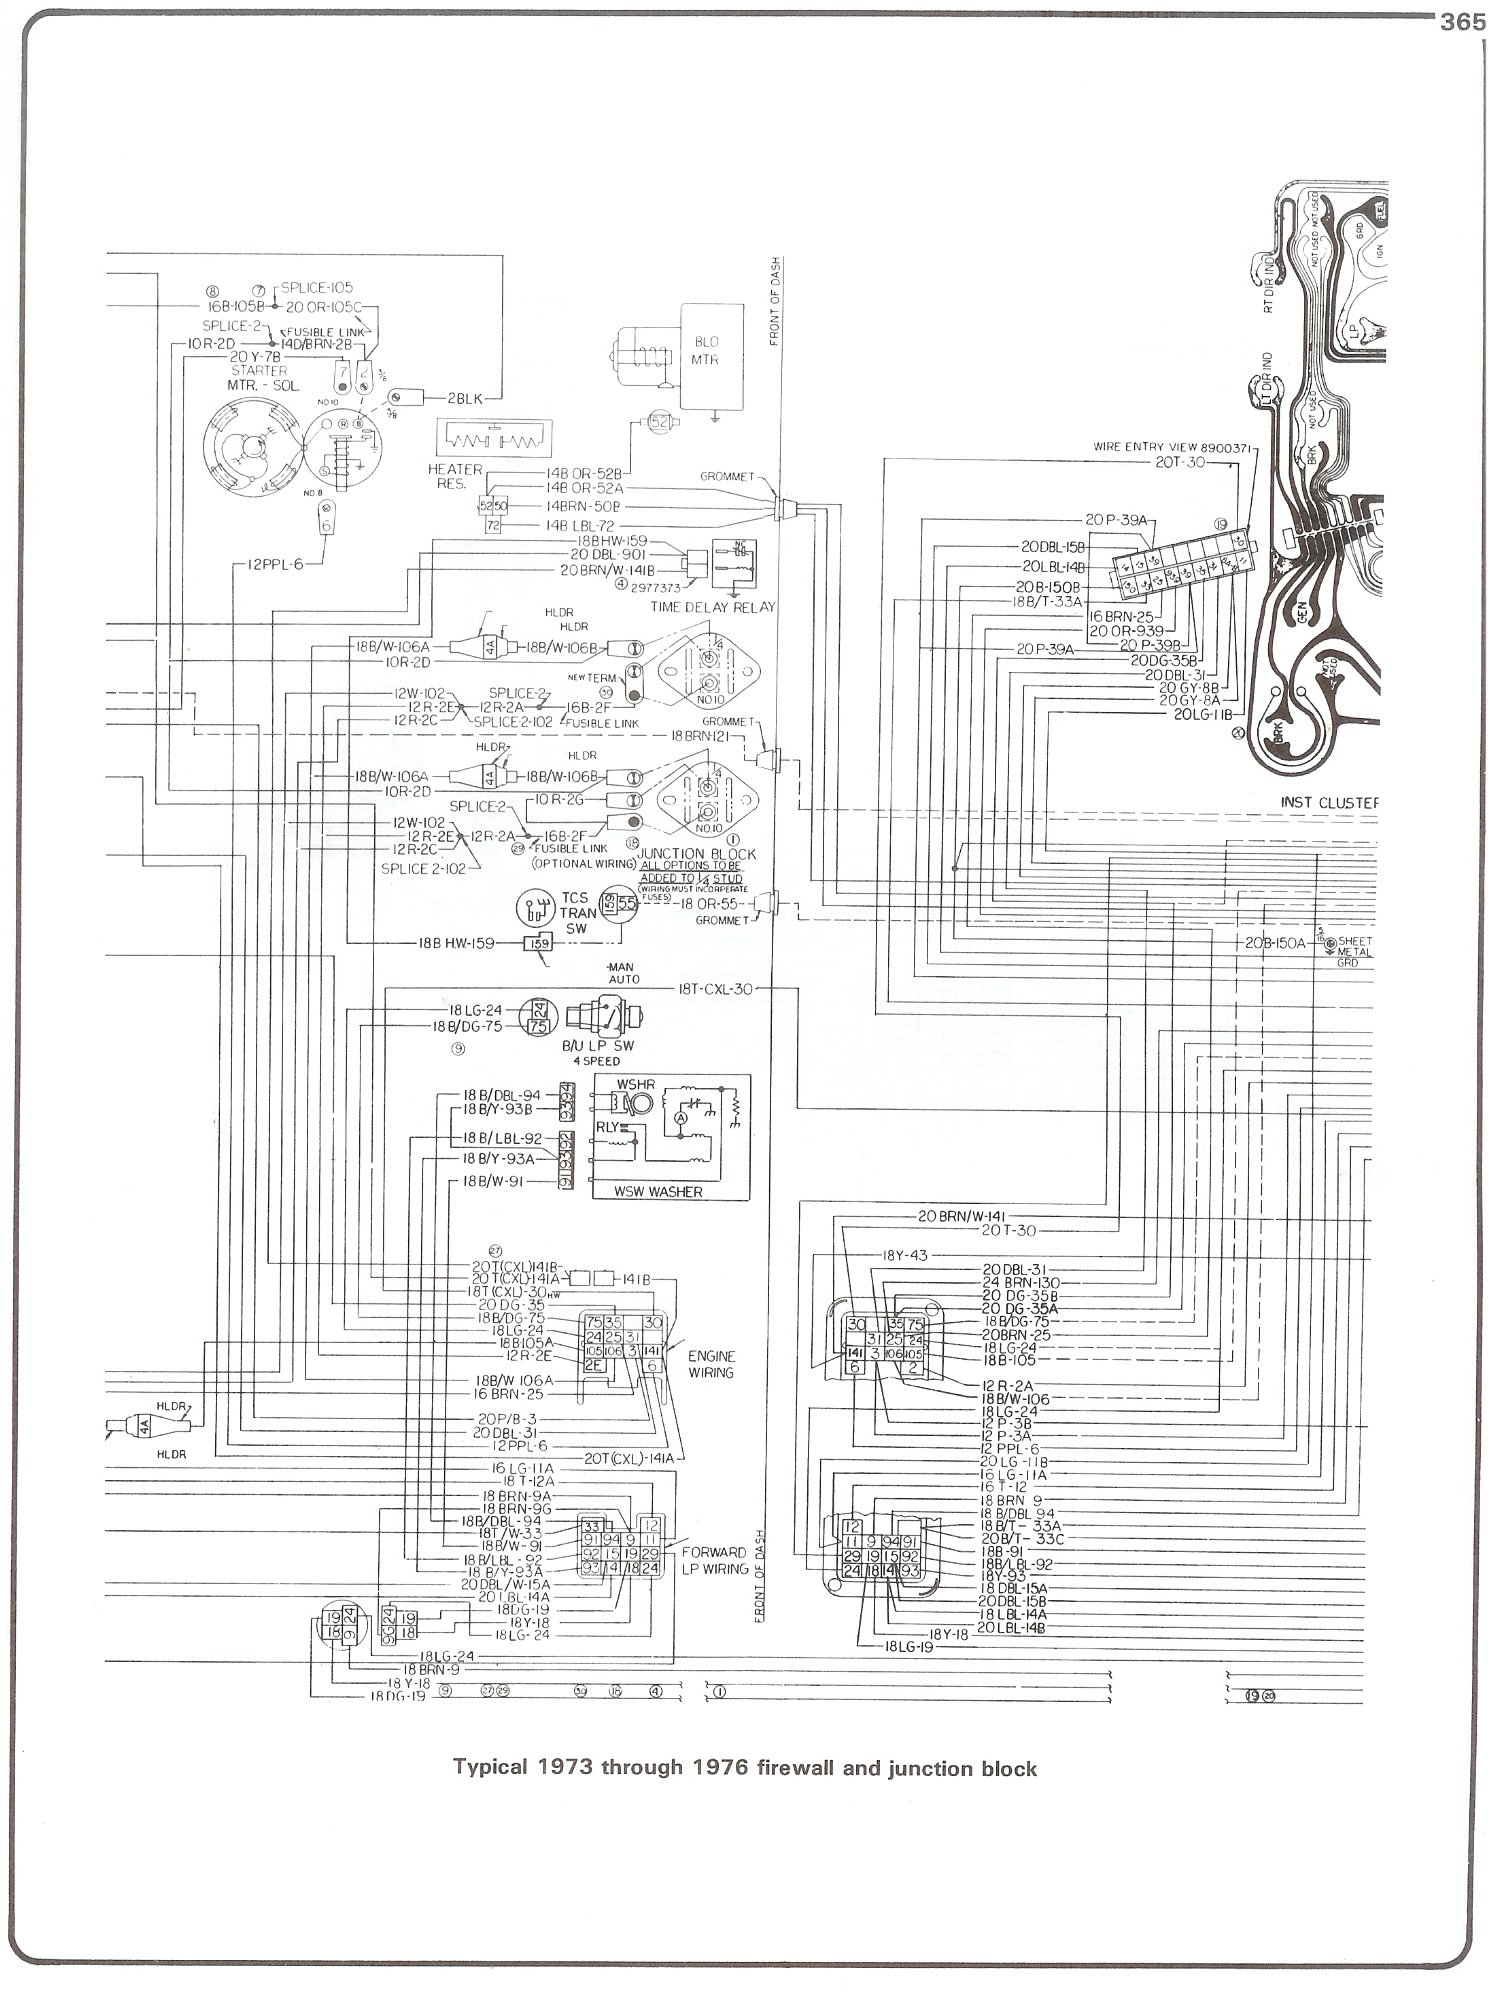 medium resolution of 76 chevy engine wiring harness diagram wiring library 1982 chevy s10 durango 1982 chevy s10 firewall wiring diagram